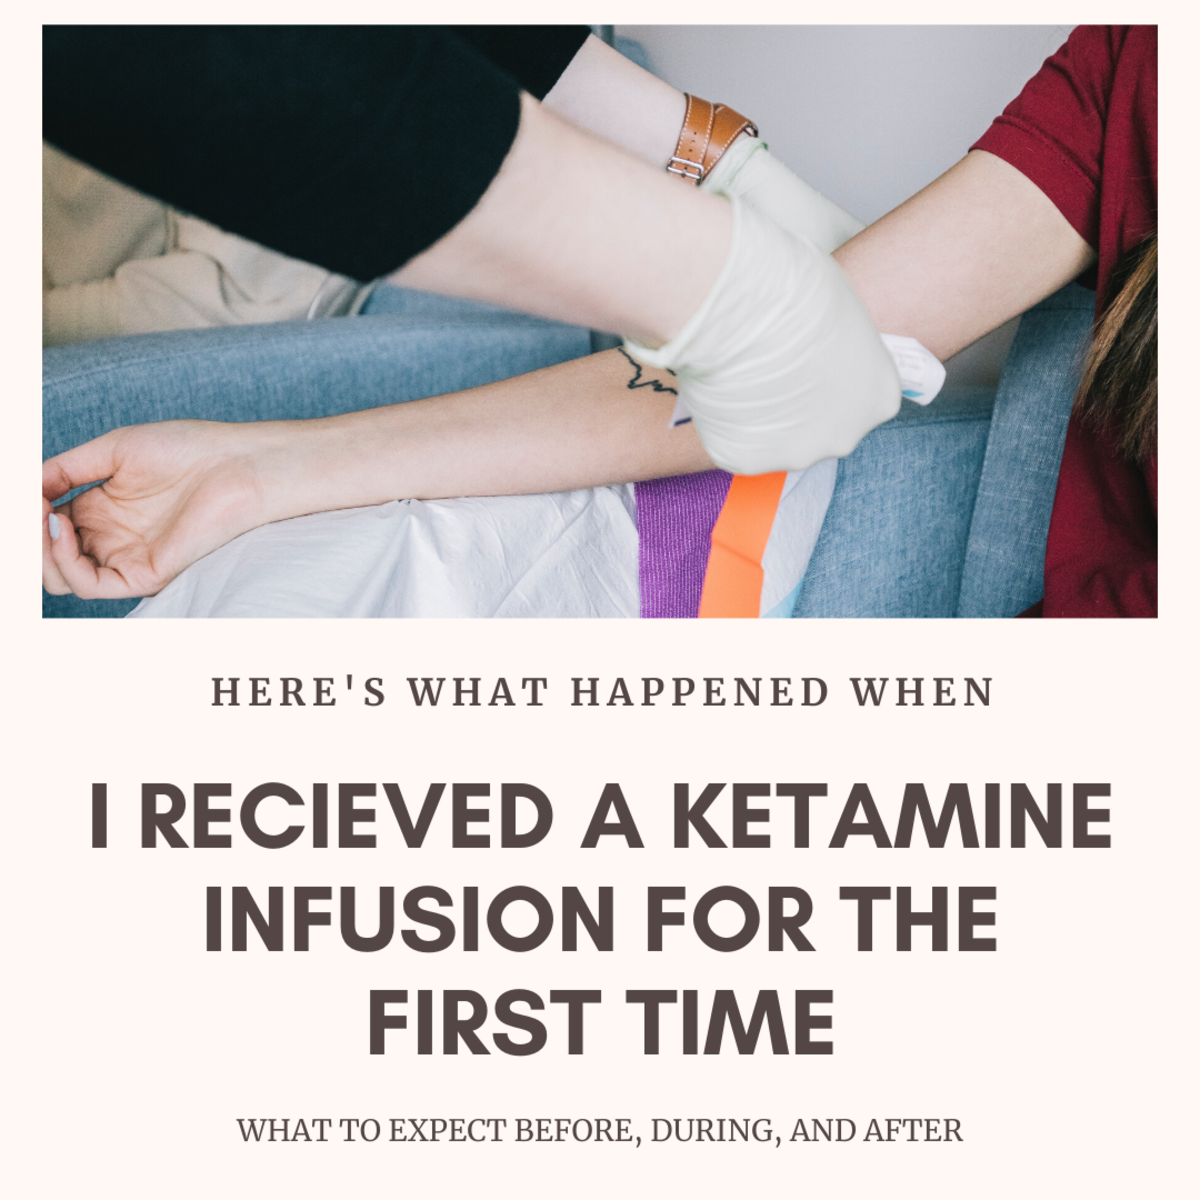 My First Time Using Ketamine Infusions for Depression